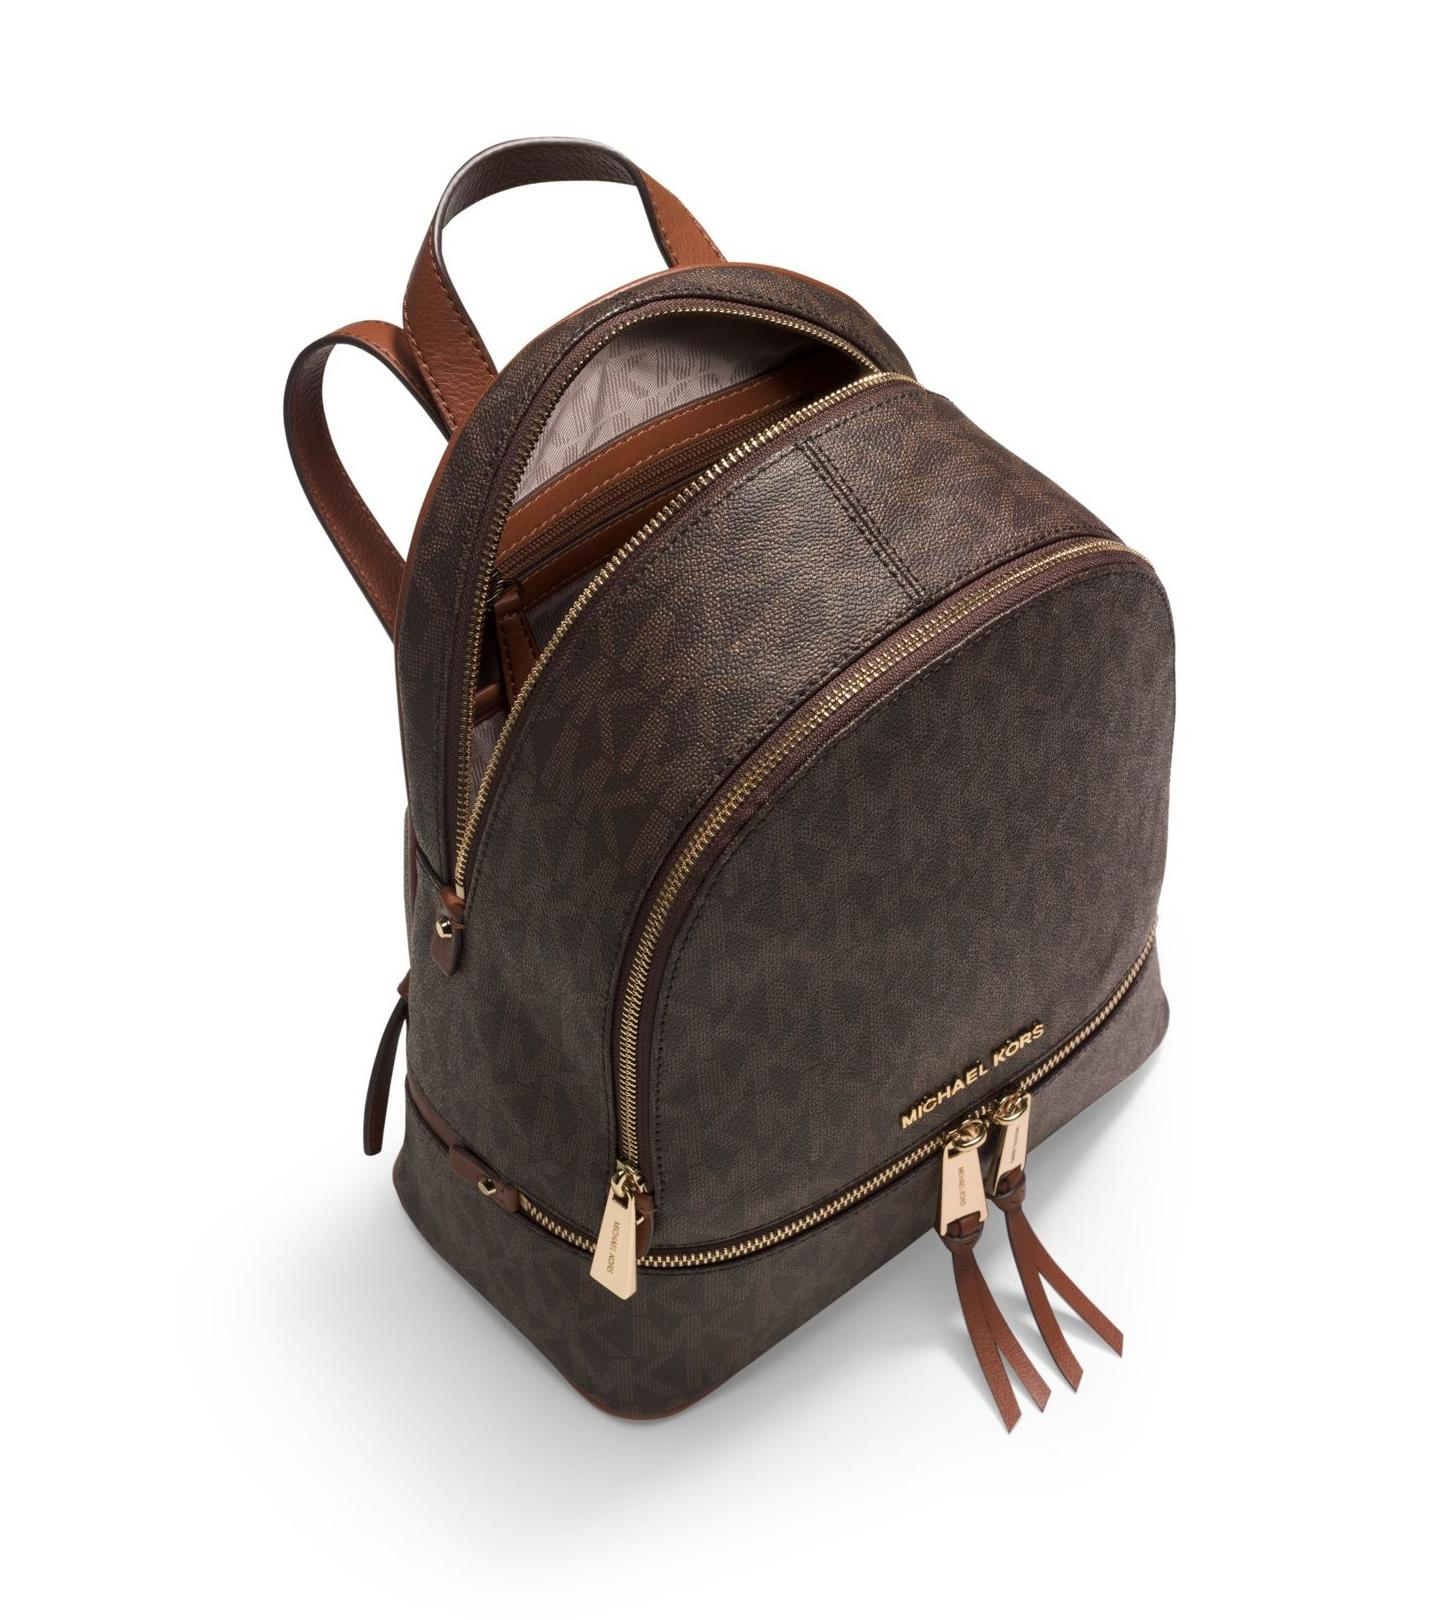 5b88873fdd72d3 where can i buy michael kors signature small backpack ad54a 21cd6